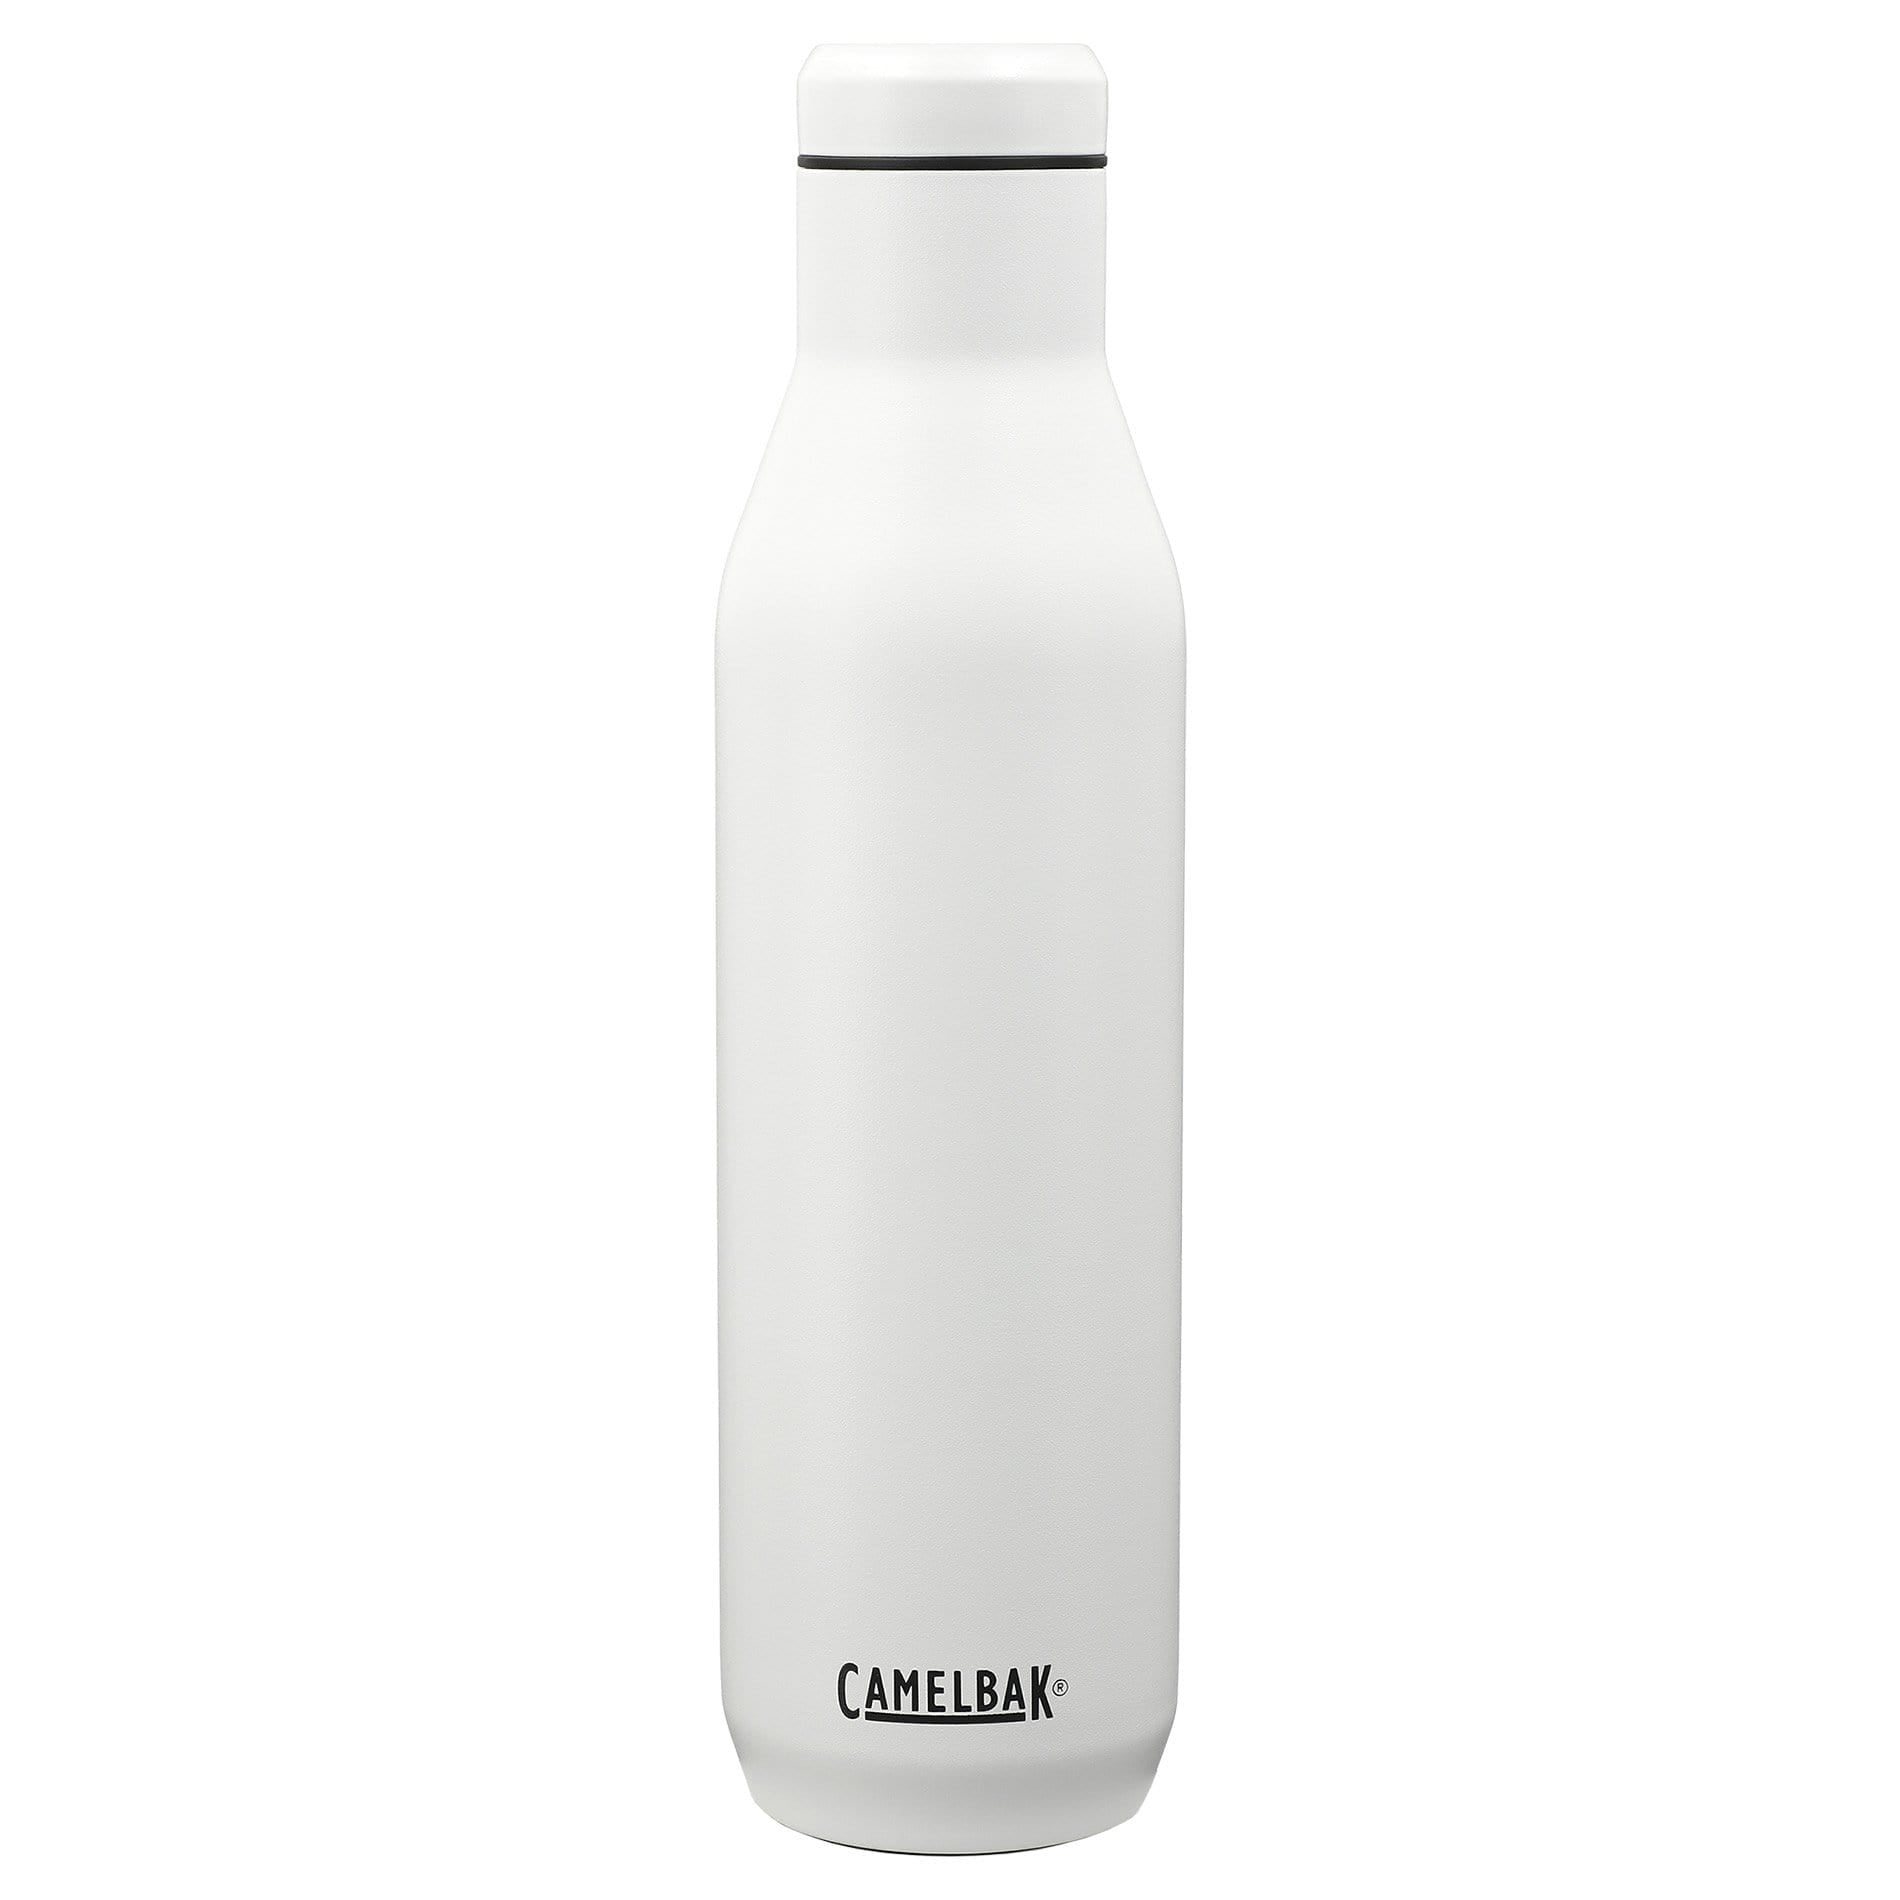 Camelbak Accessories 25oz / White CamelBak - Wine Bottle 25oz